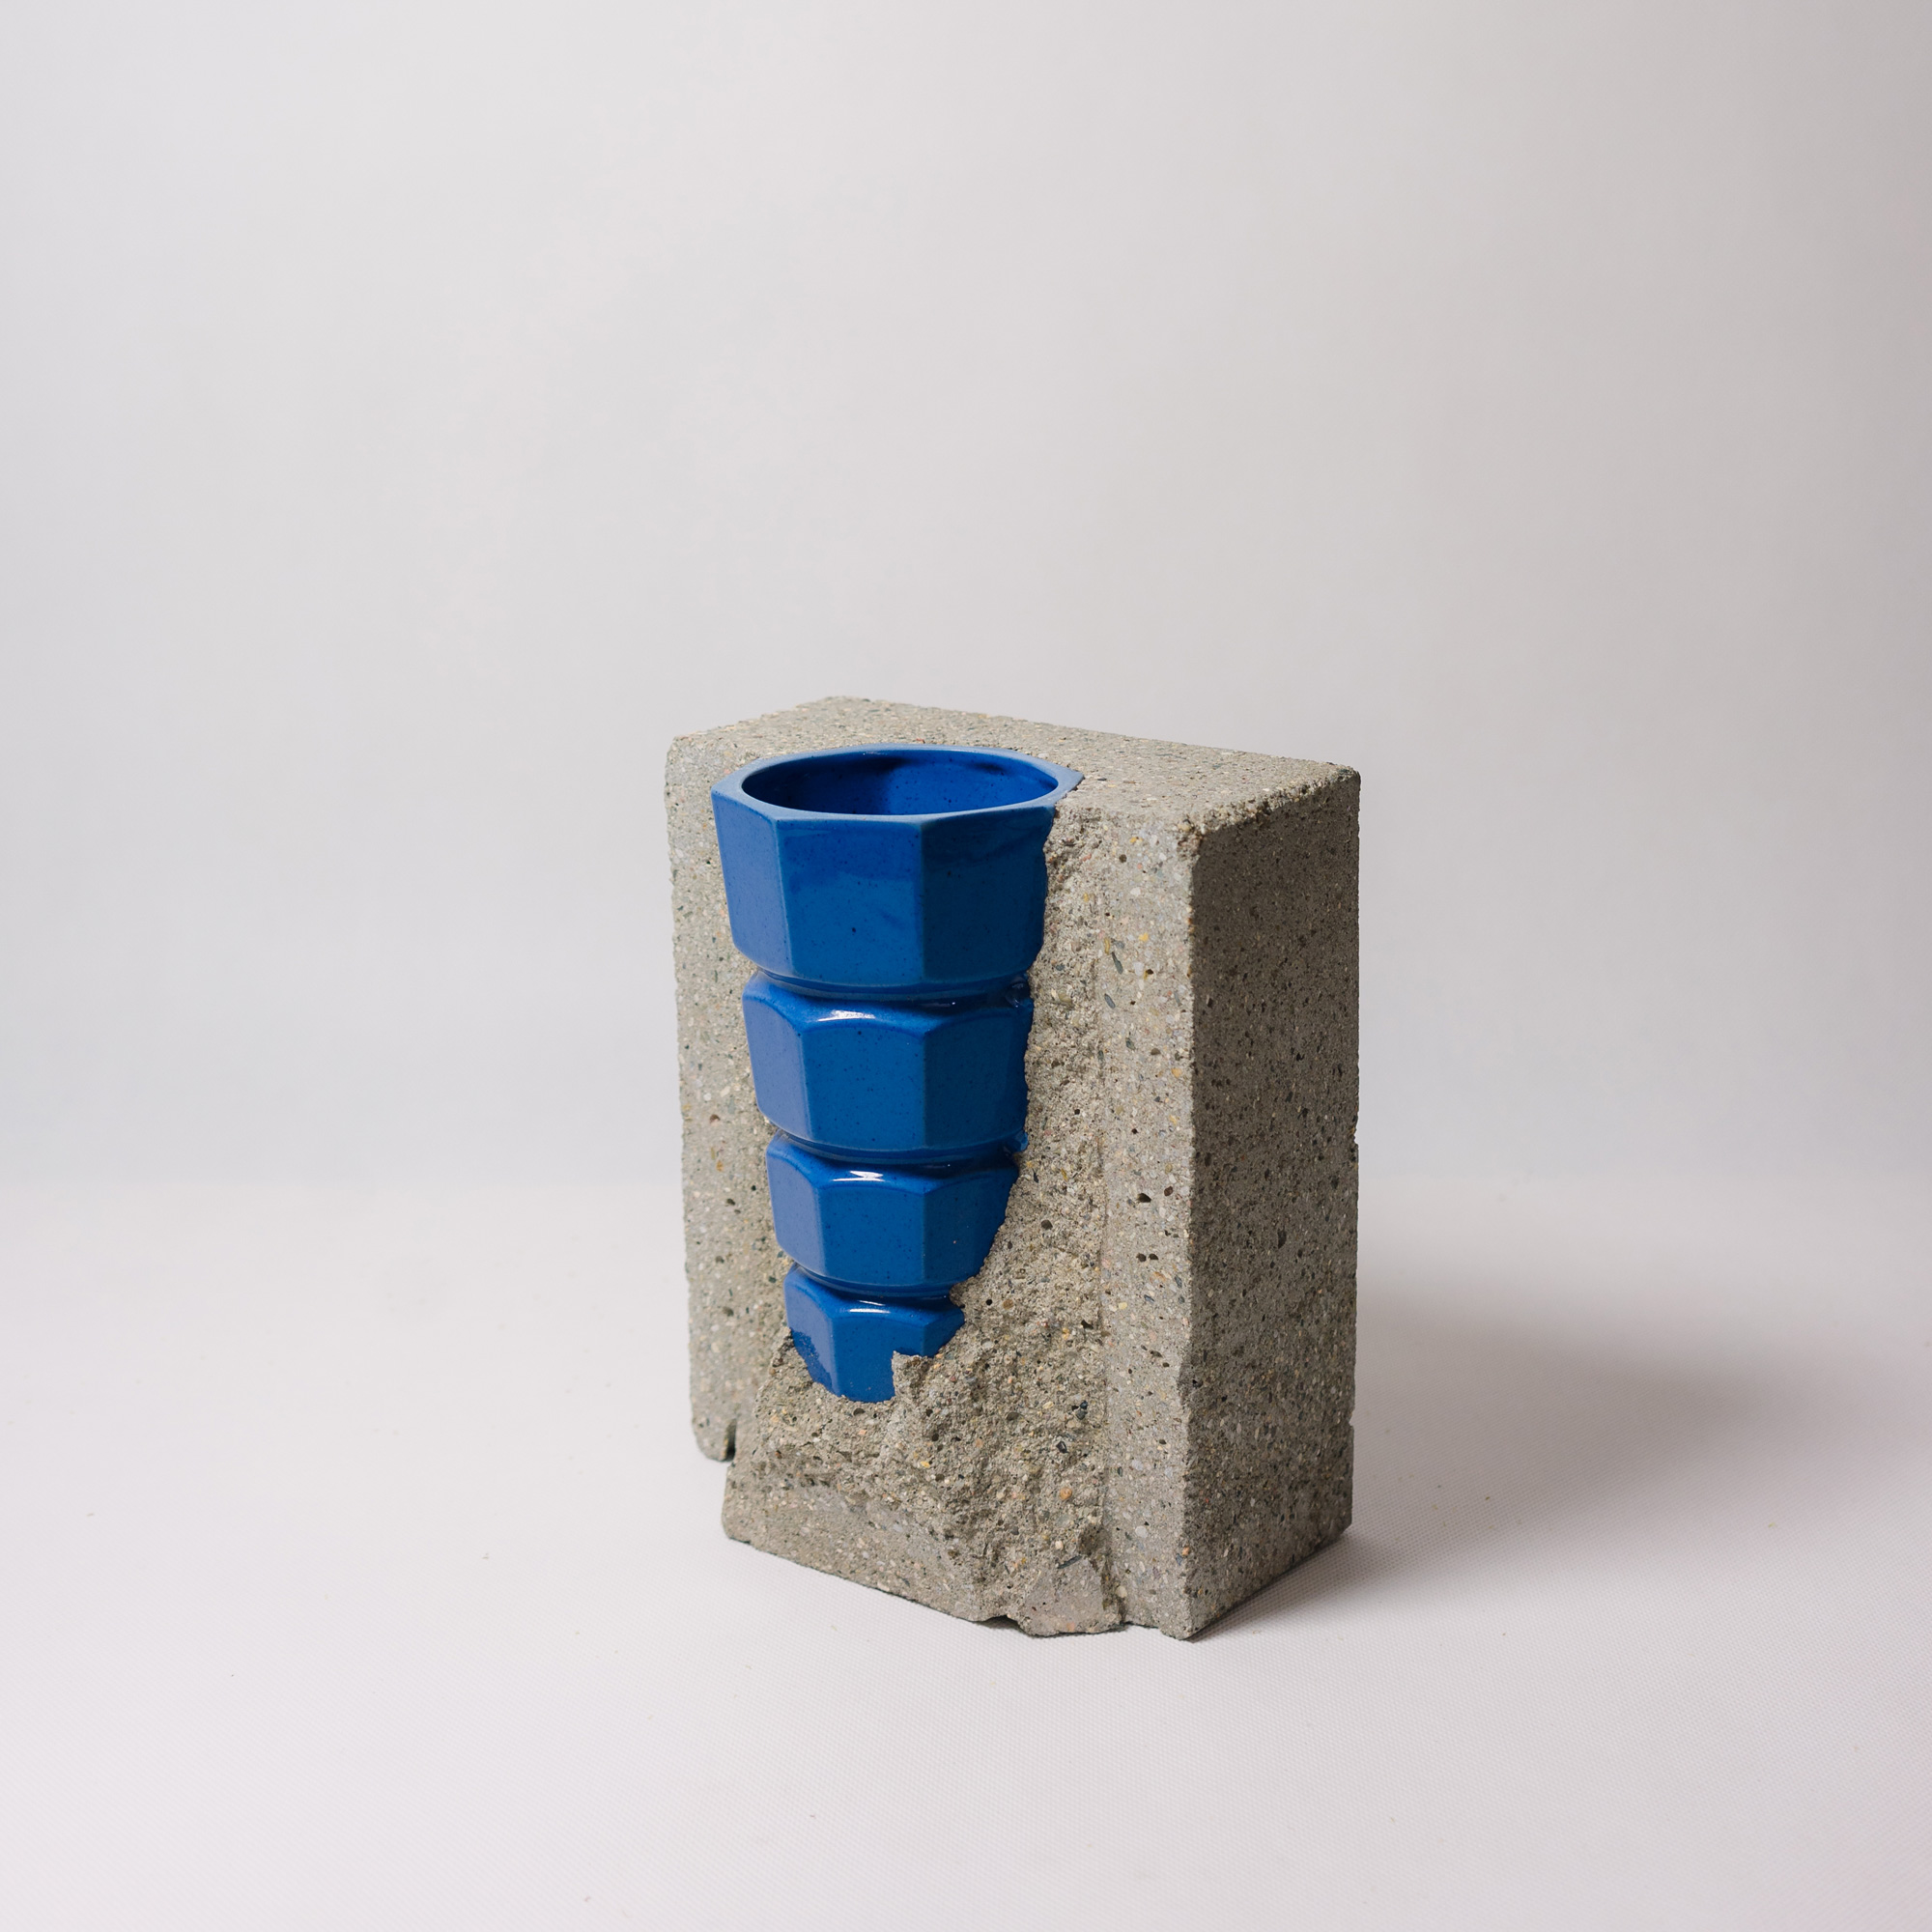 Blue porcelain-concrete vase by Vobouch designers with yellow flowers 02